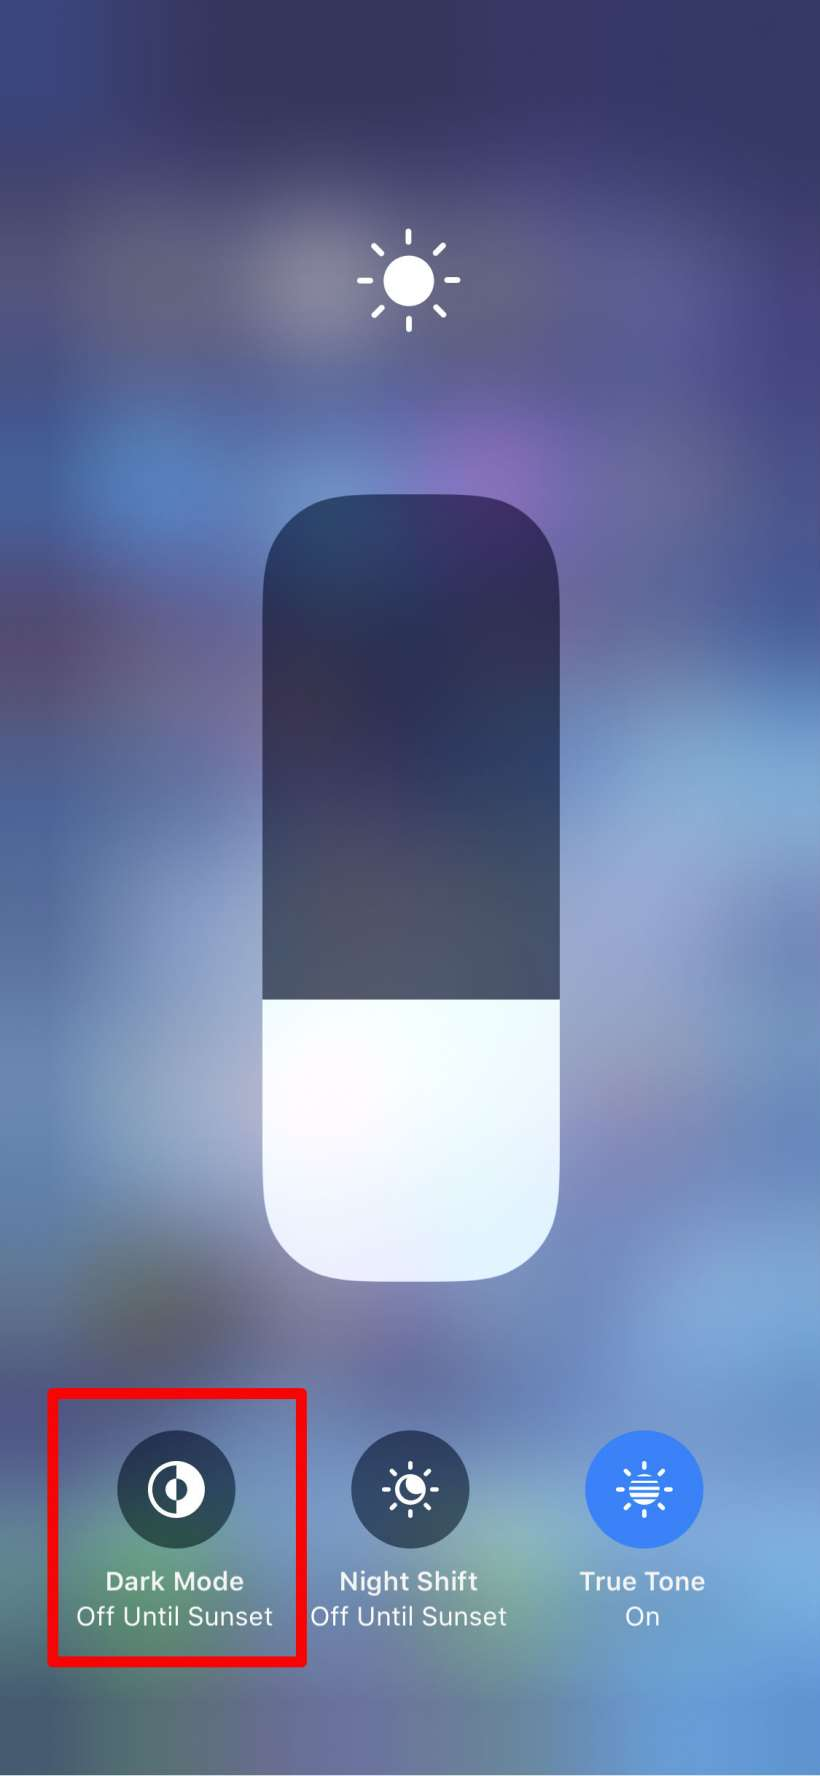 How to add a dark mode button to the Control Center on iPhone and iPad.